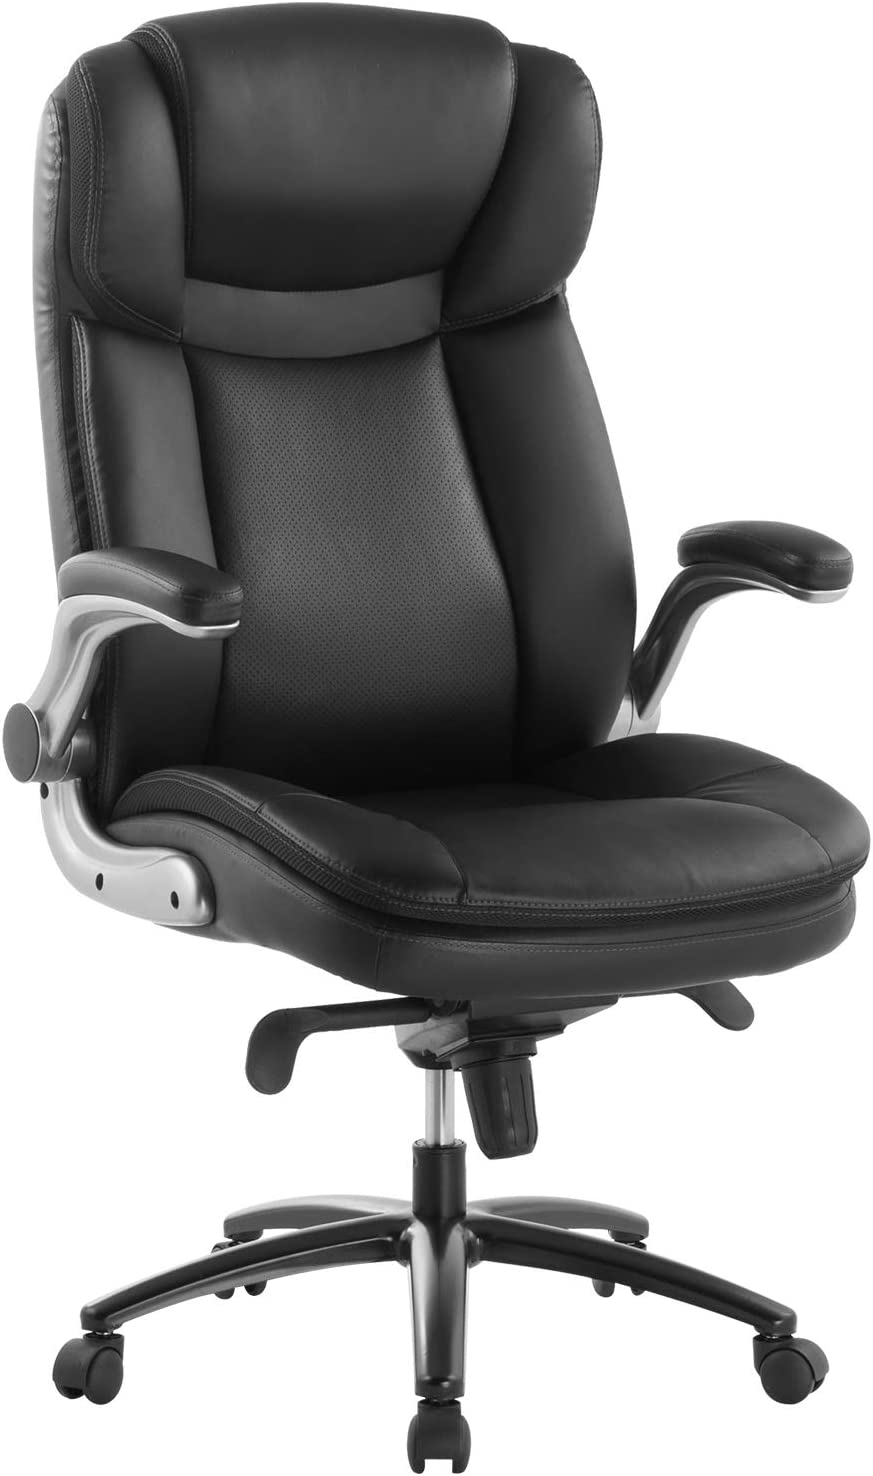 Topsky Office Chair Executive Large Leather Chair White Blue Amazon Ca Sports Outdoors